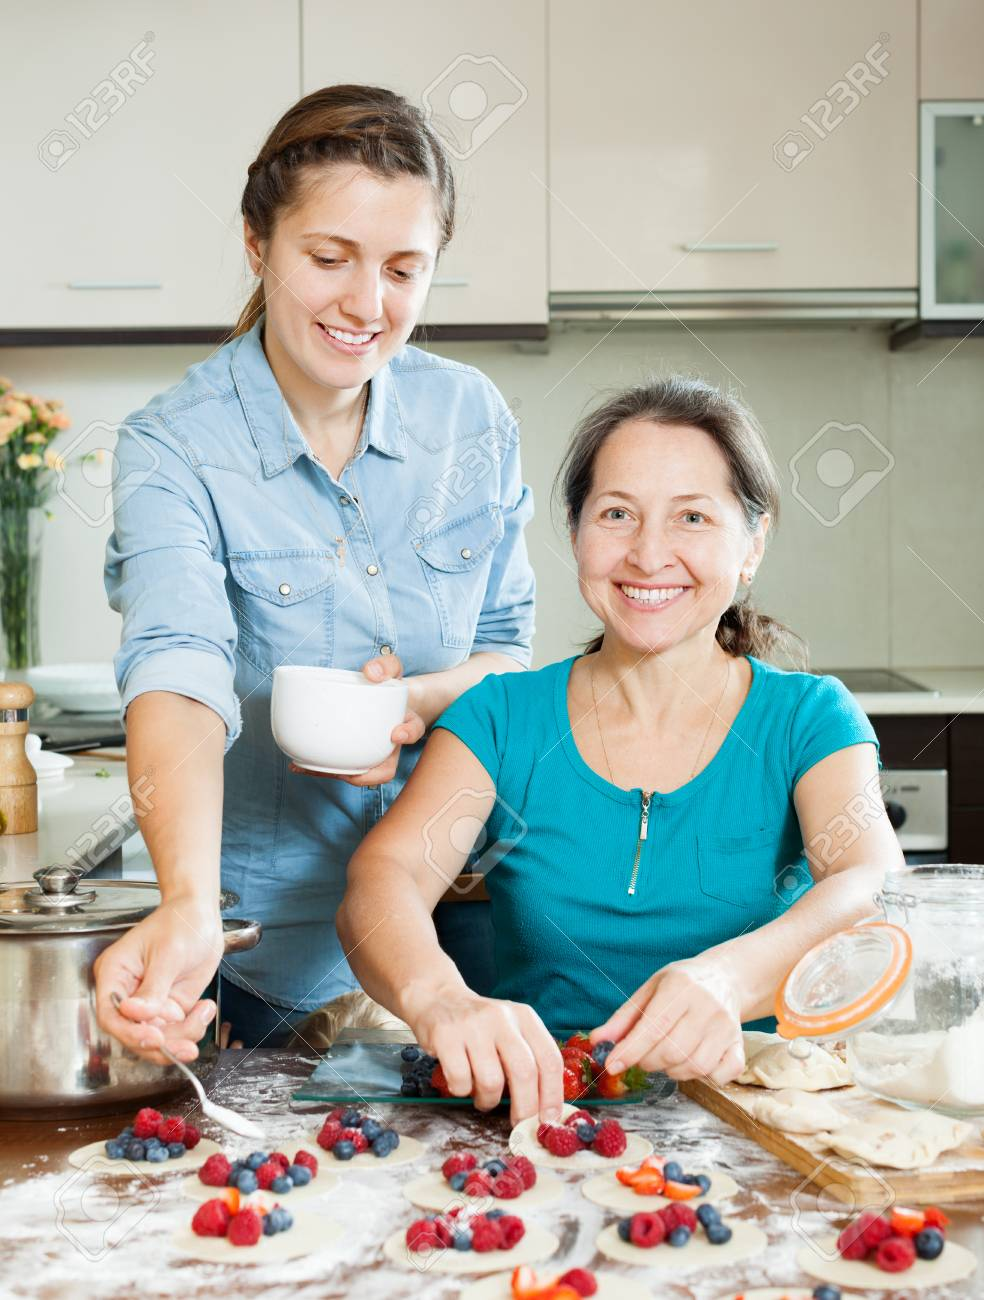 Smiling Women Making Sweet Pies With Berries Together At Home ...